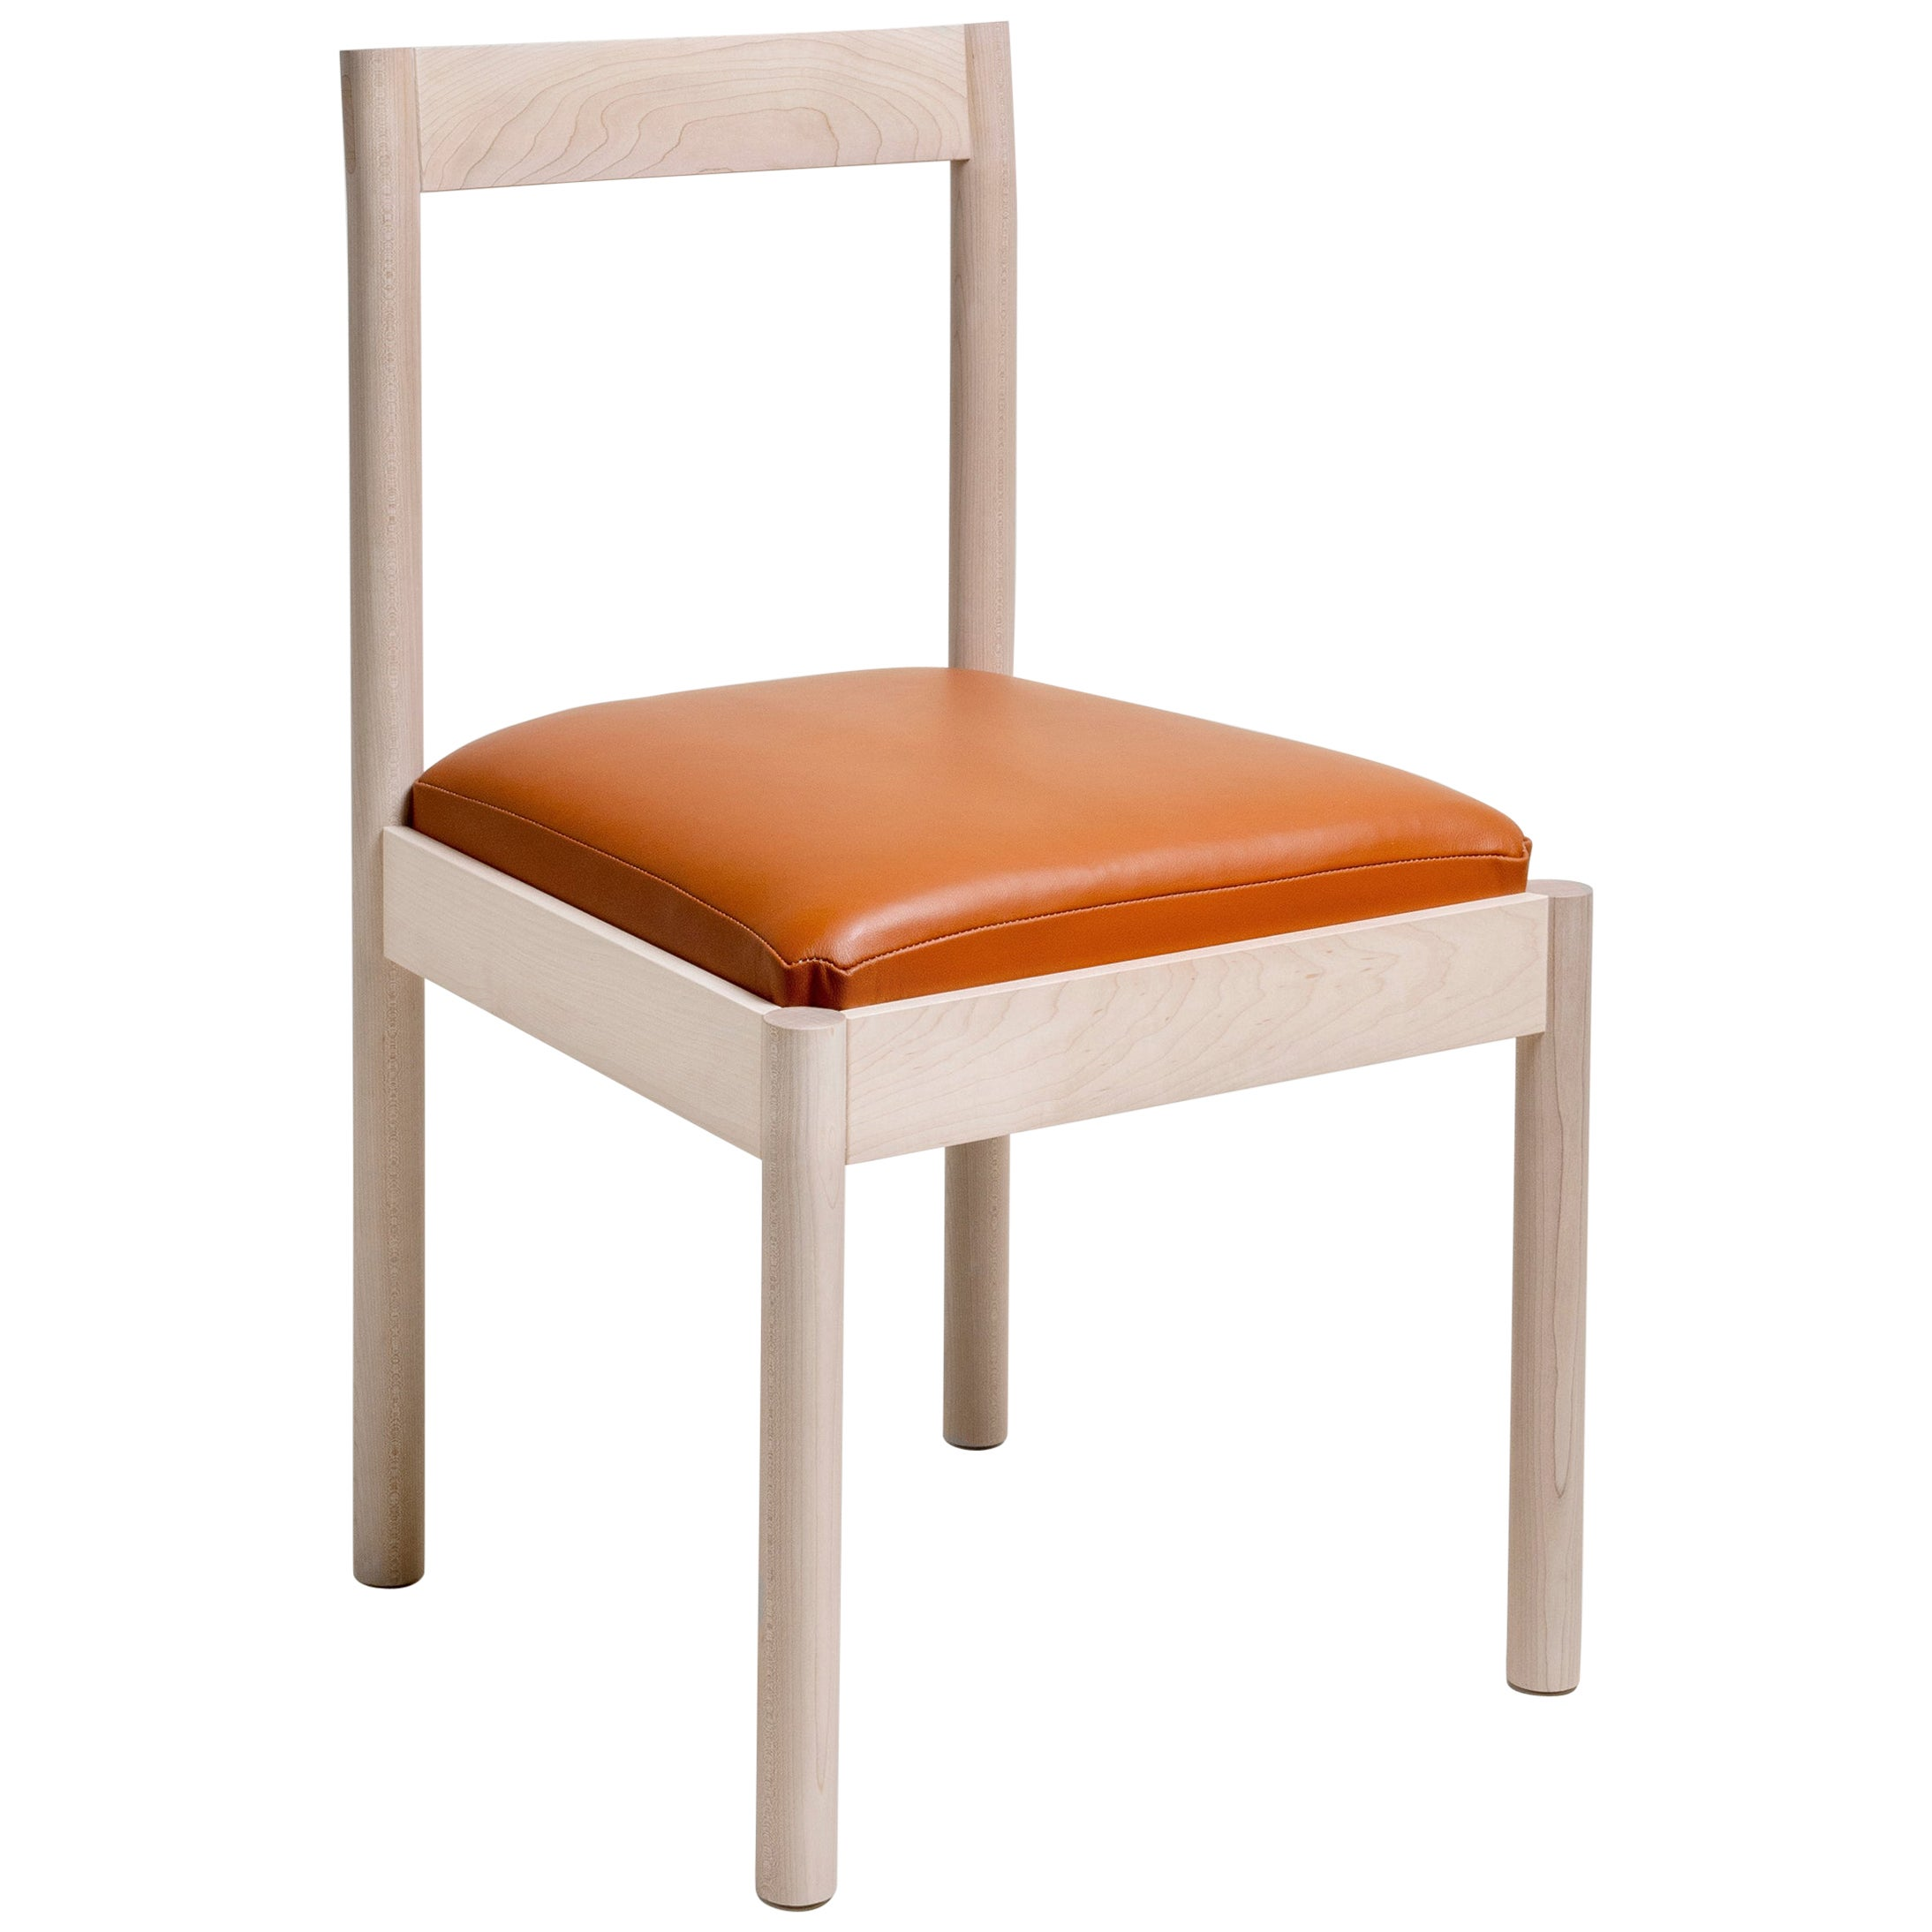 Feast Dining Chair in Solid Maple and Brass by Bowen Liu